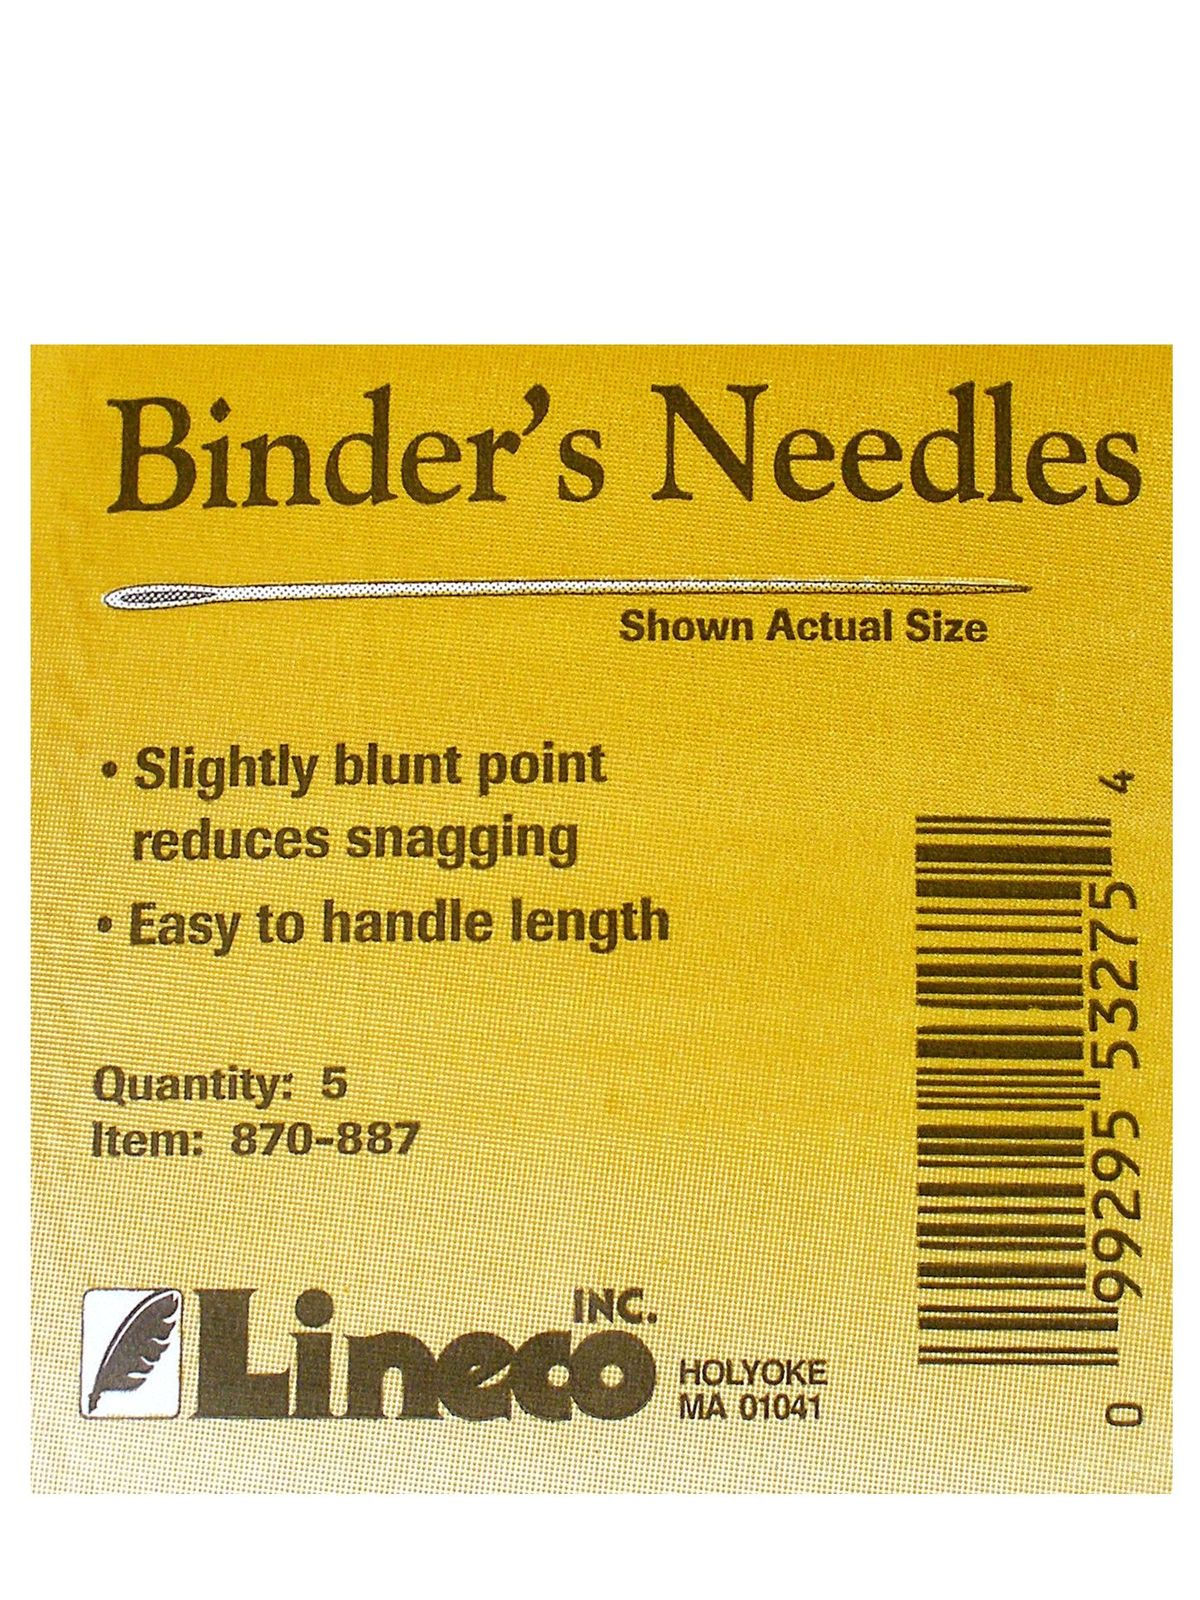 Bookbinders Needles